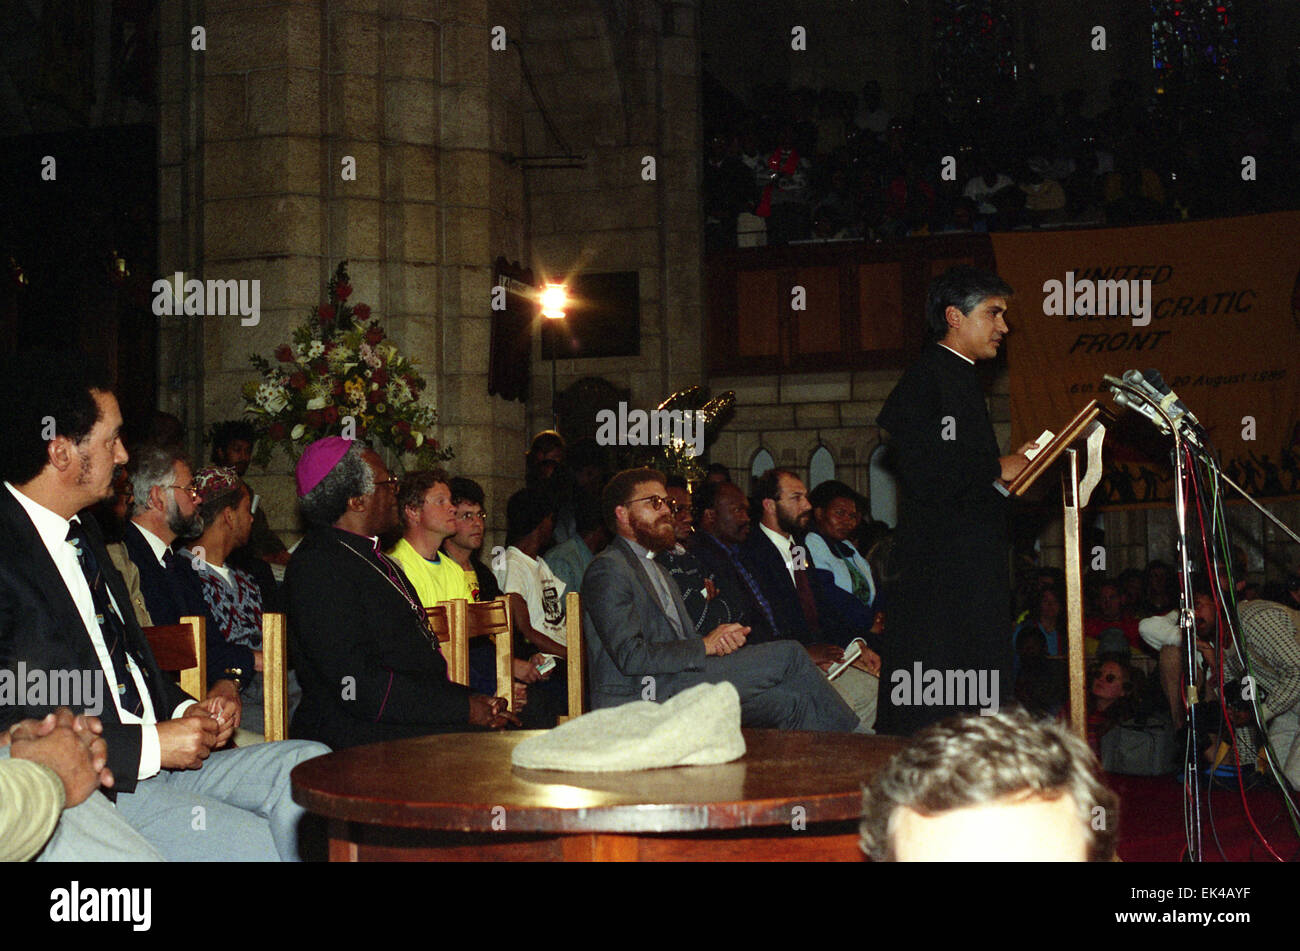 UDF, United Democratic Front's 6th birthday at St George's Cathedral,Cape Town 20 August 1989. The United - Stock Image